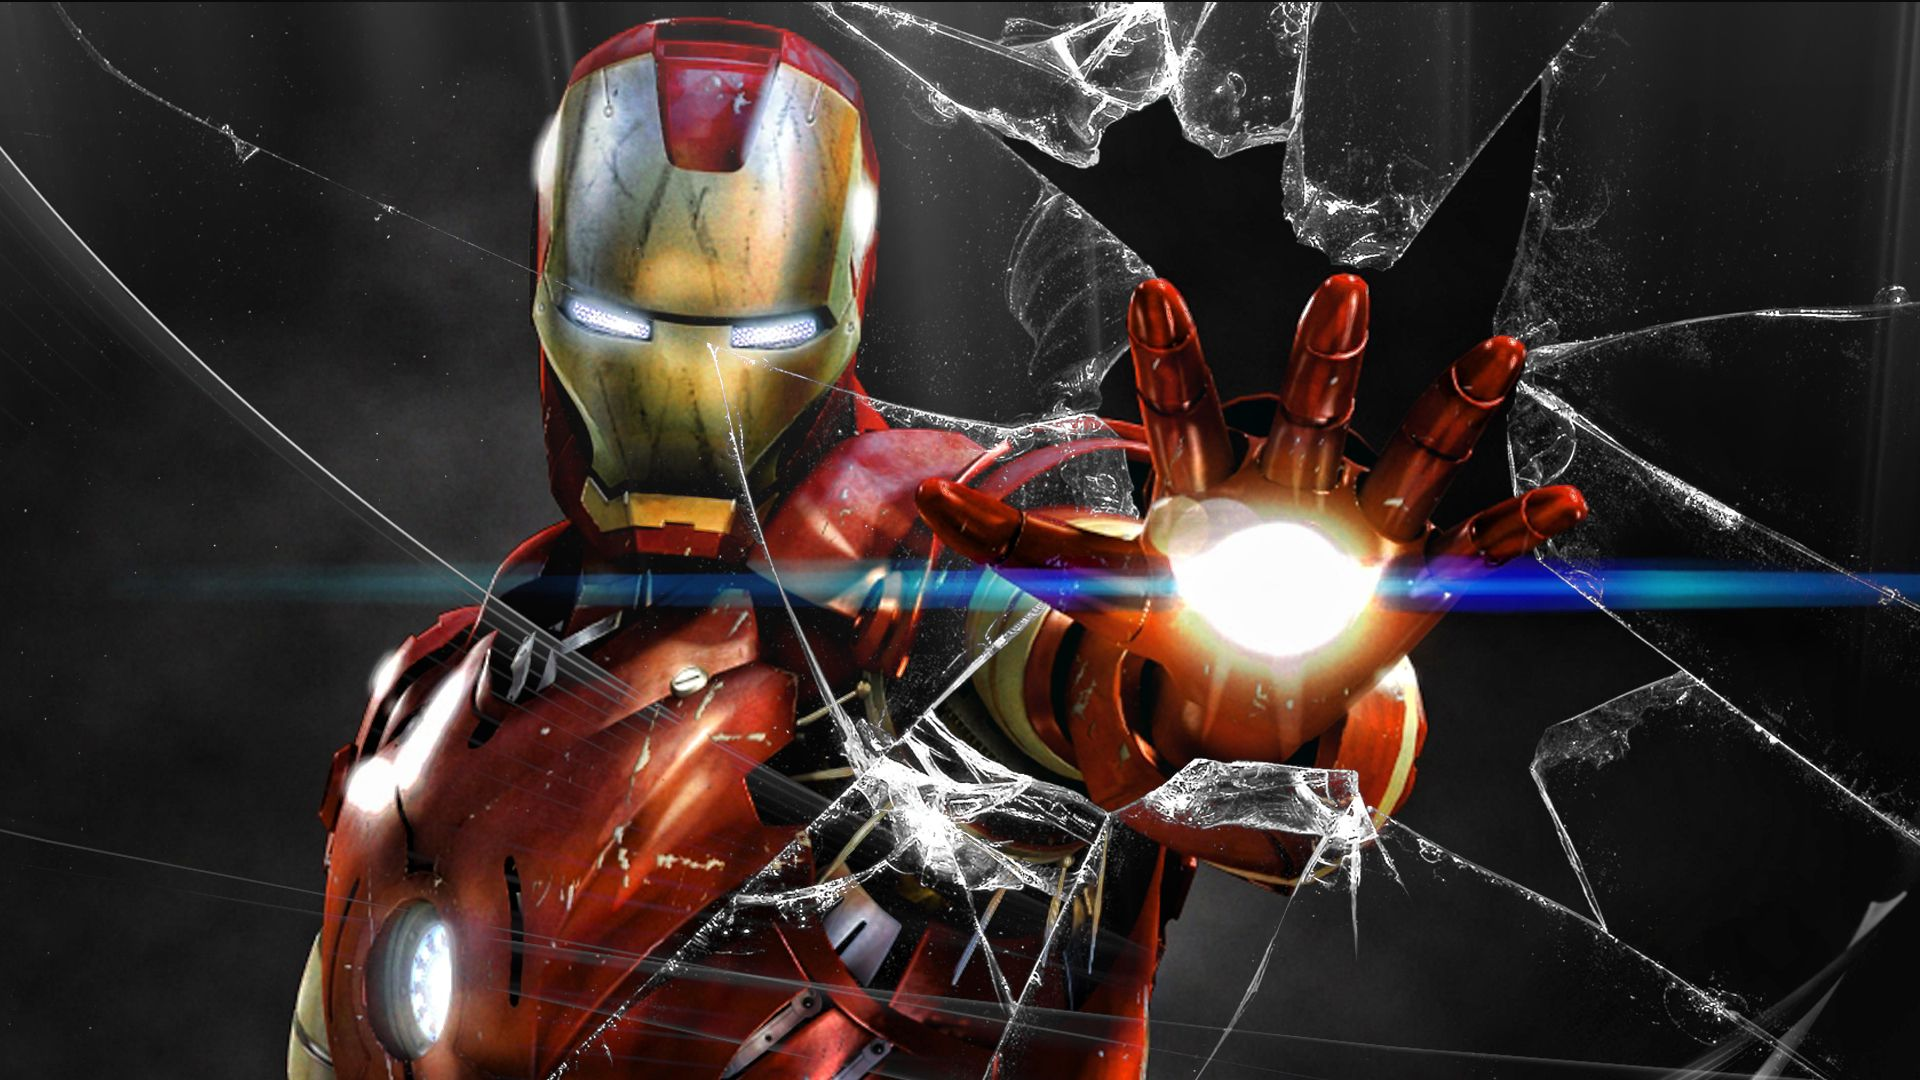 35 Iron Man Hd Wallpapers For Desktop: Captain America Vs Iron Man HD Desktop Wallpaper